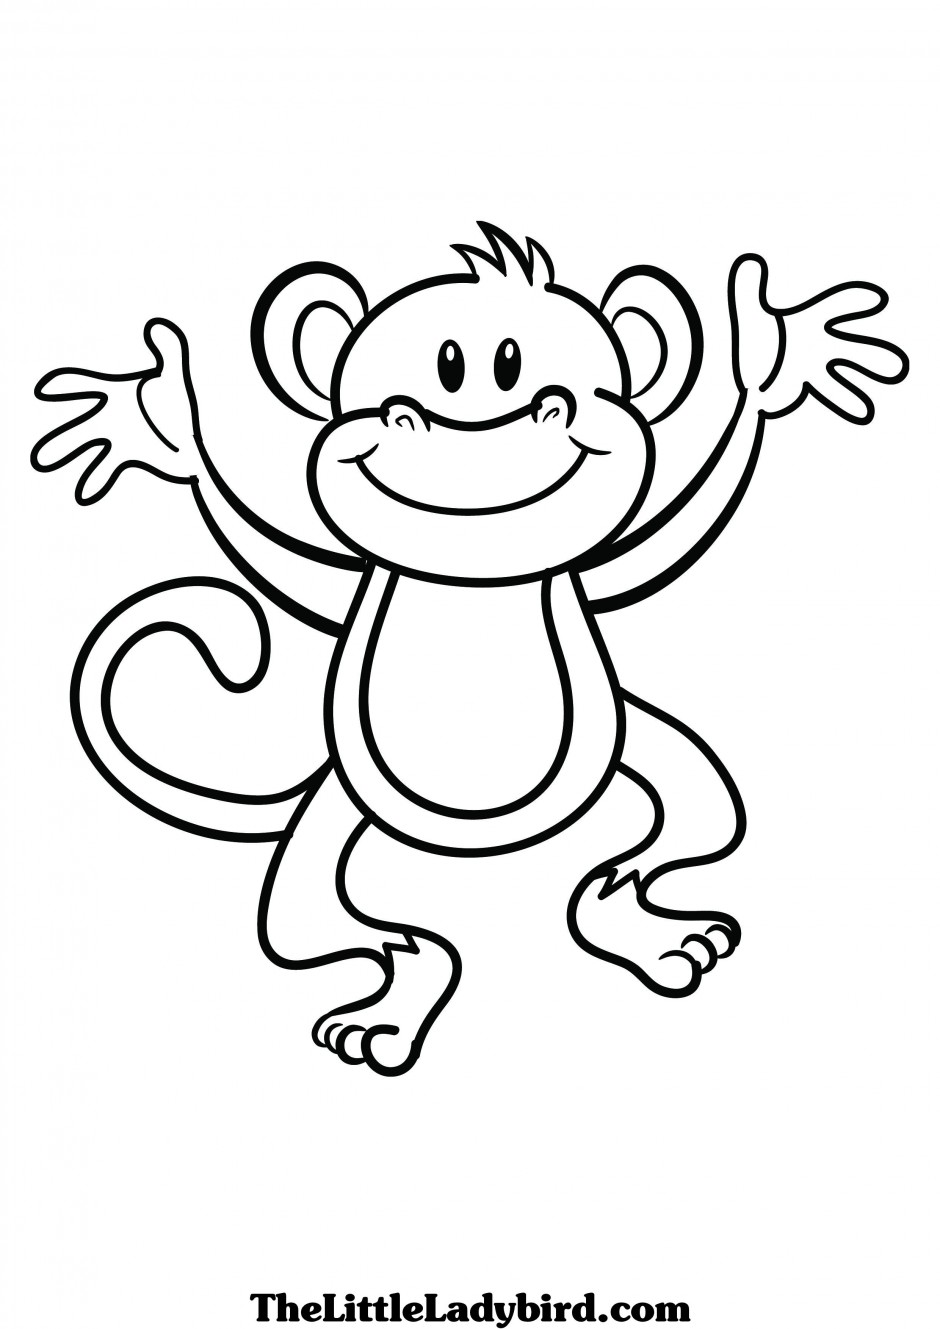 monkey clipart coloring anonymoousvictorz 5 little monkeys clipart black and white monkey clipart coloring